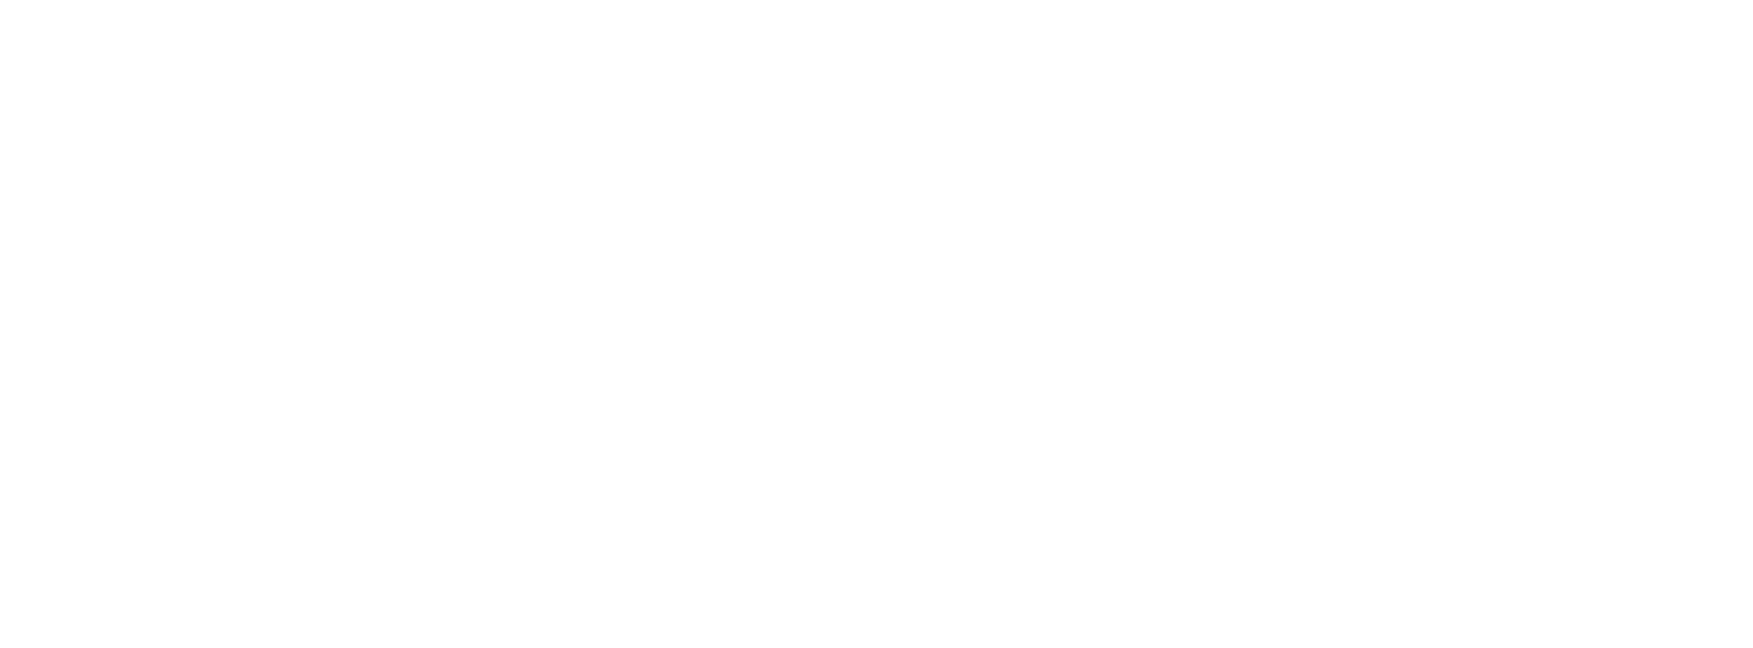 CareersWiki White Logo